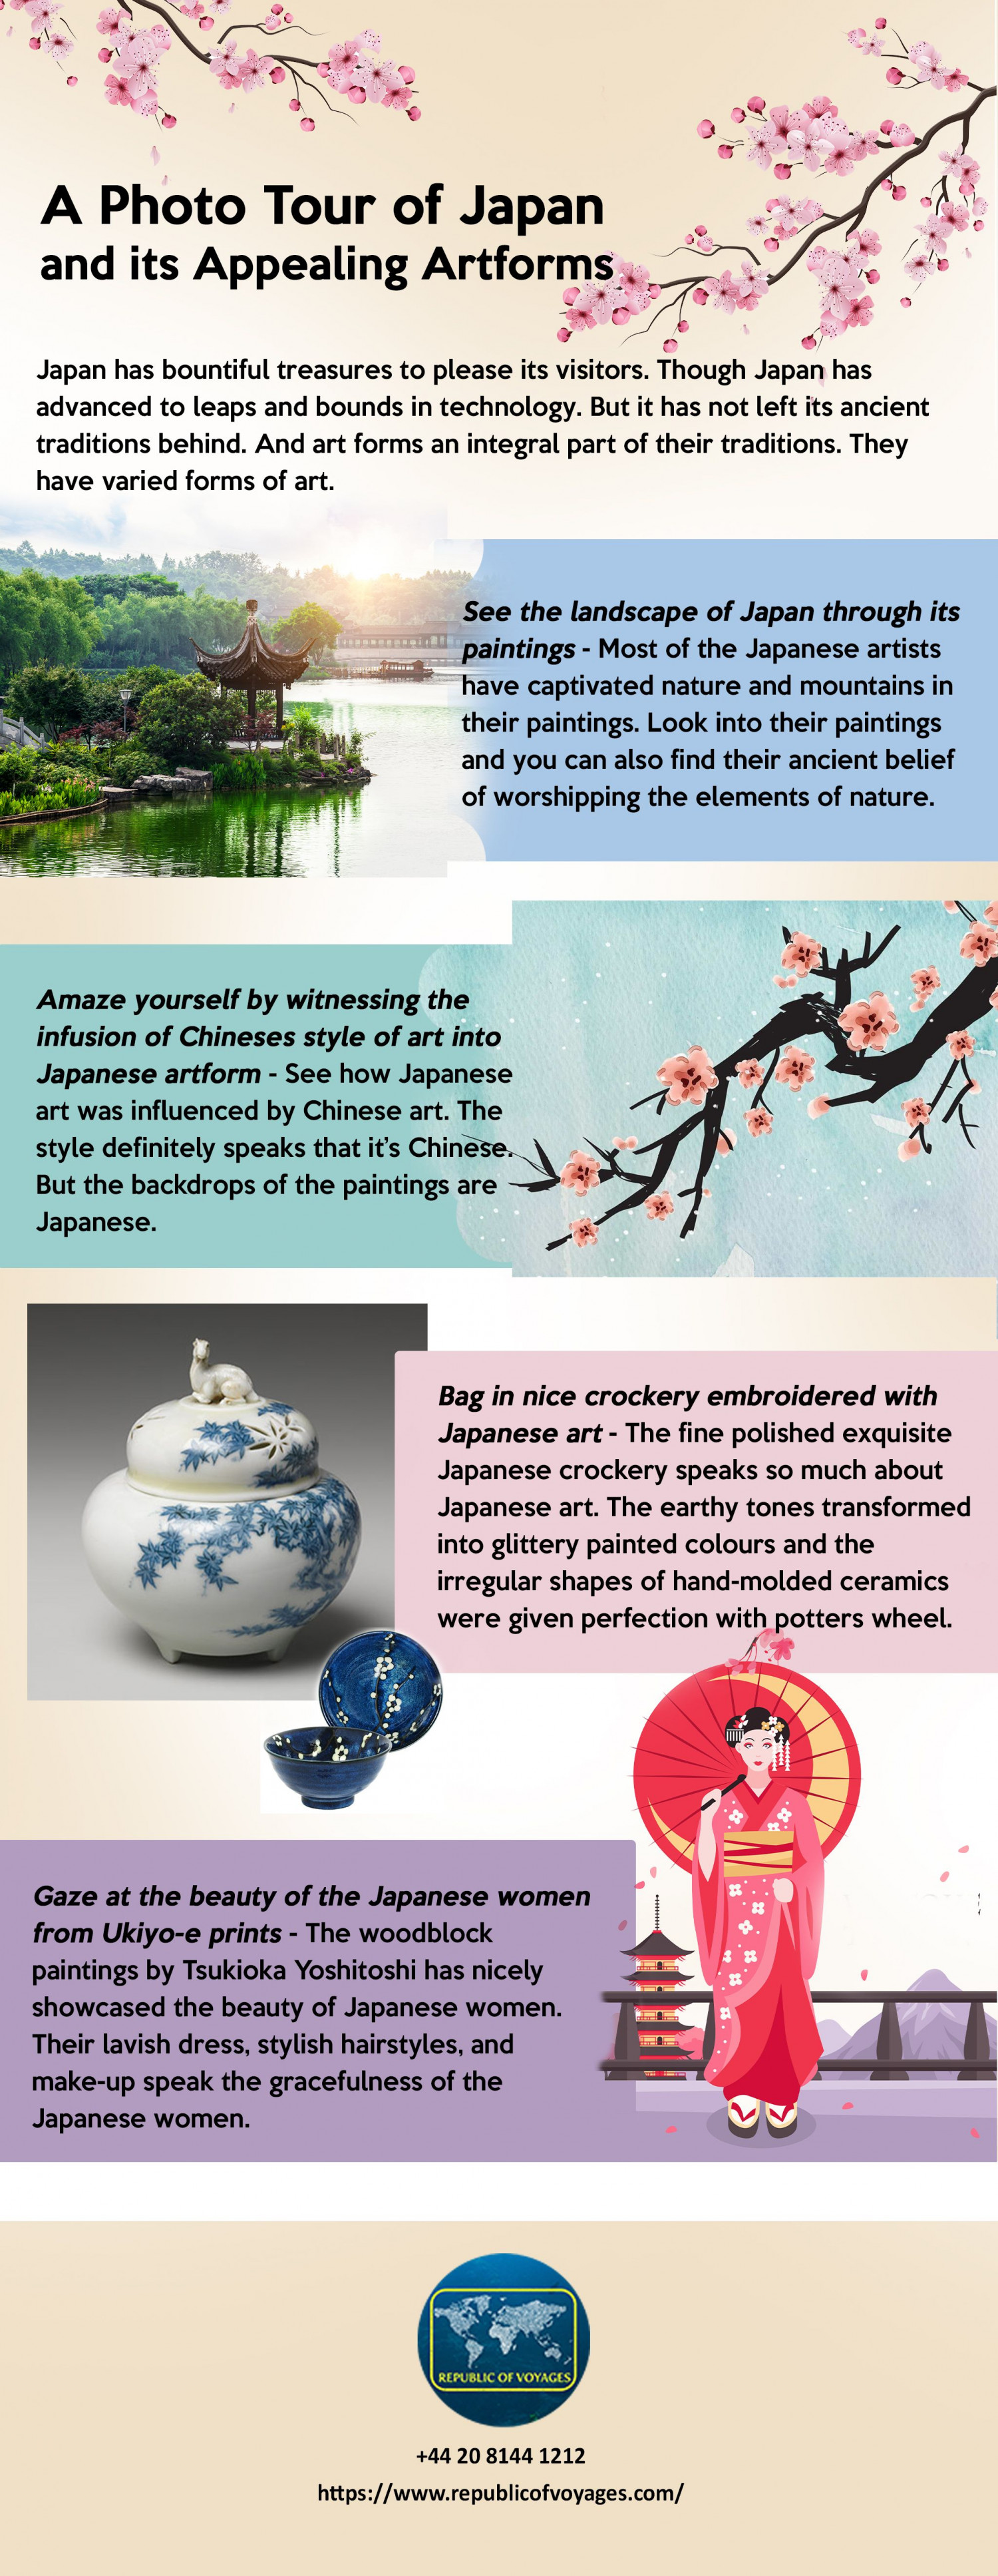 A Photo Tour of Japan and its Appealing Artforms Infographic